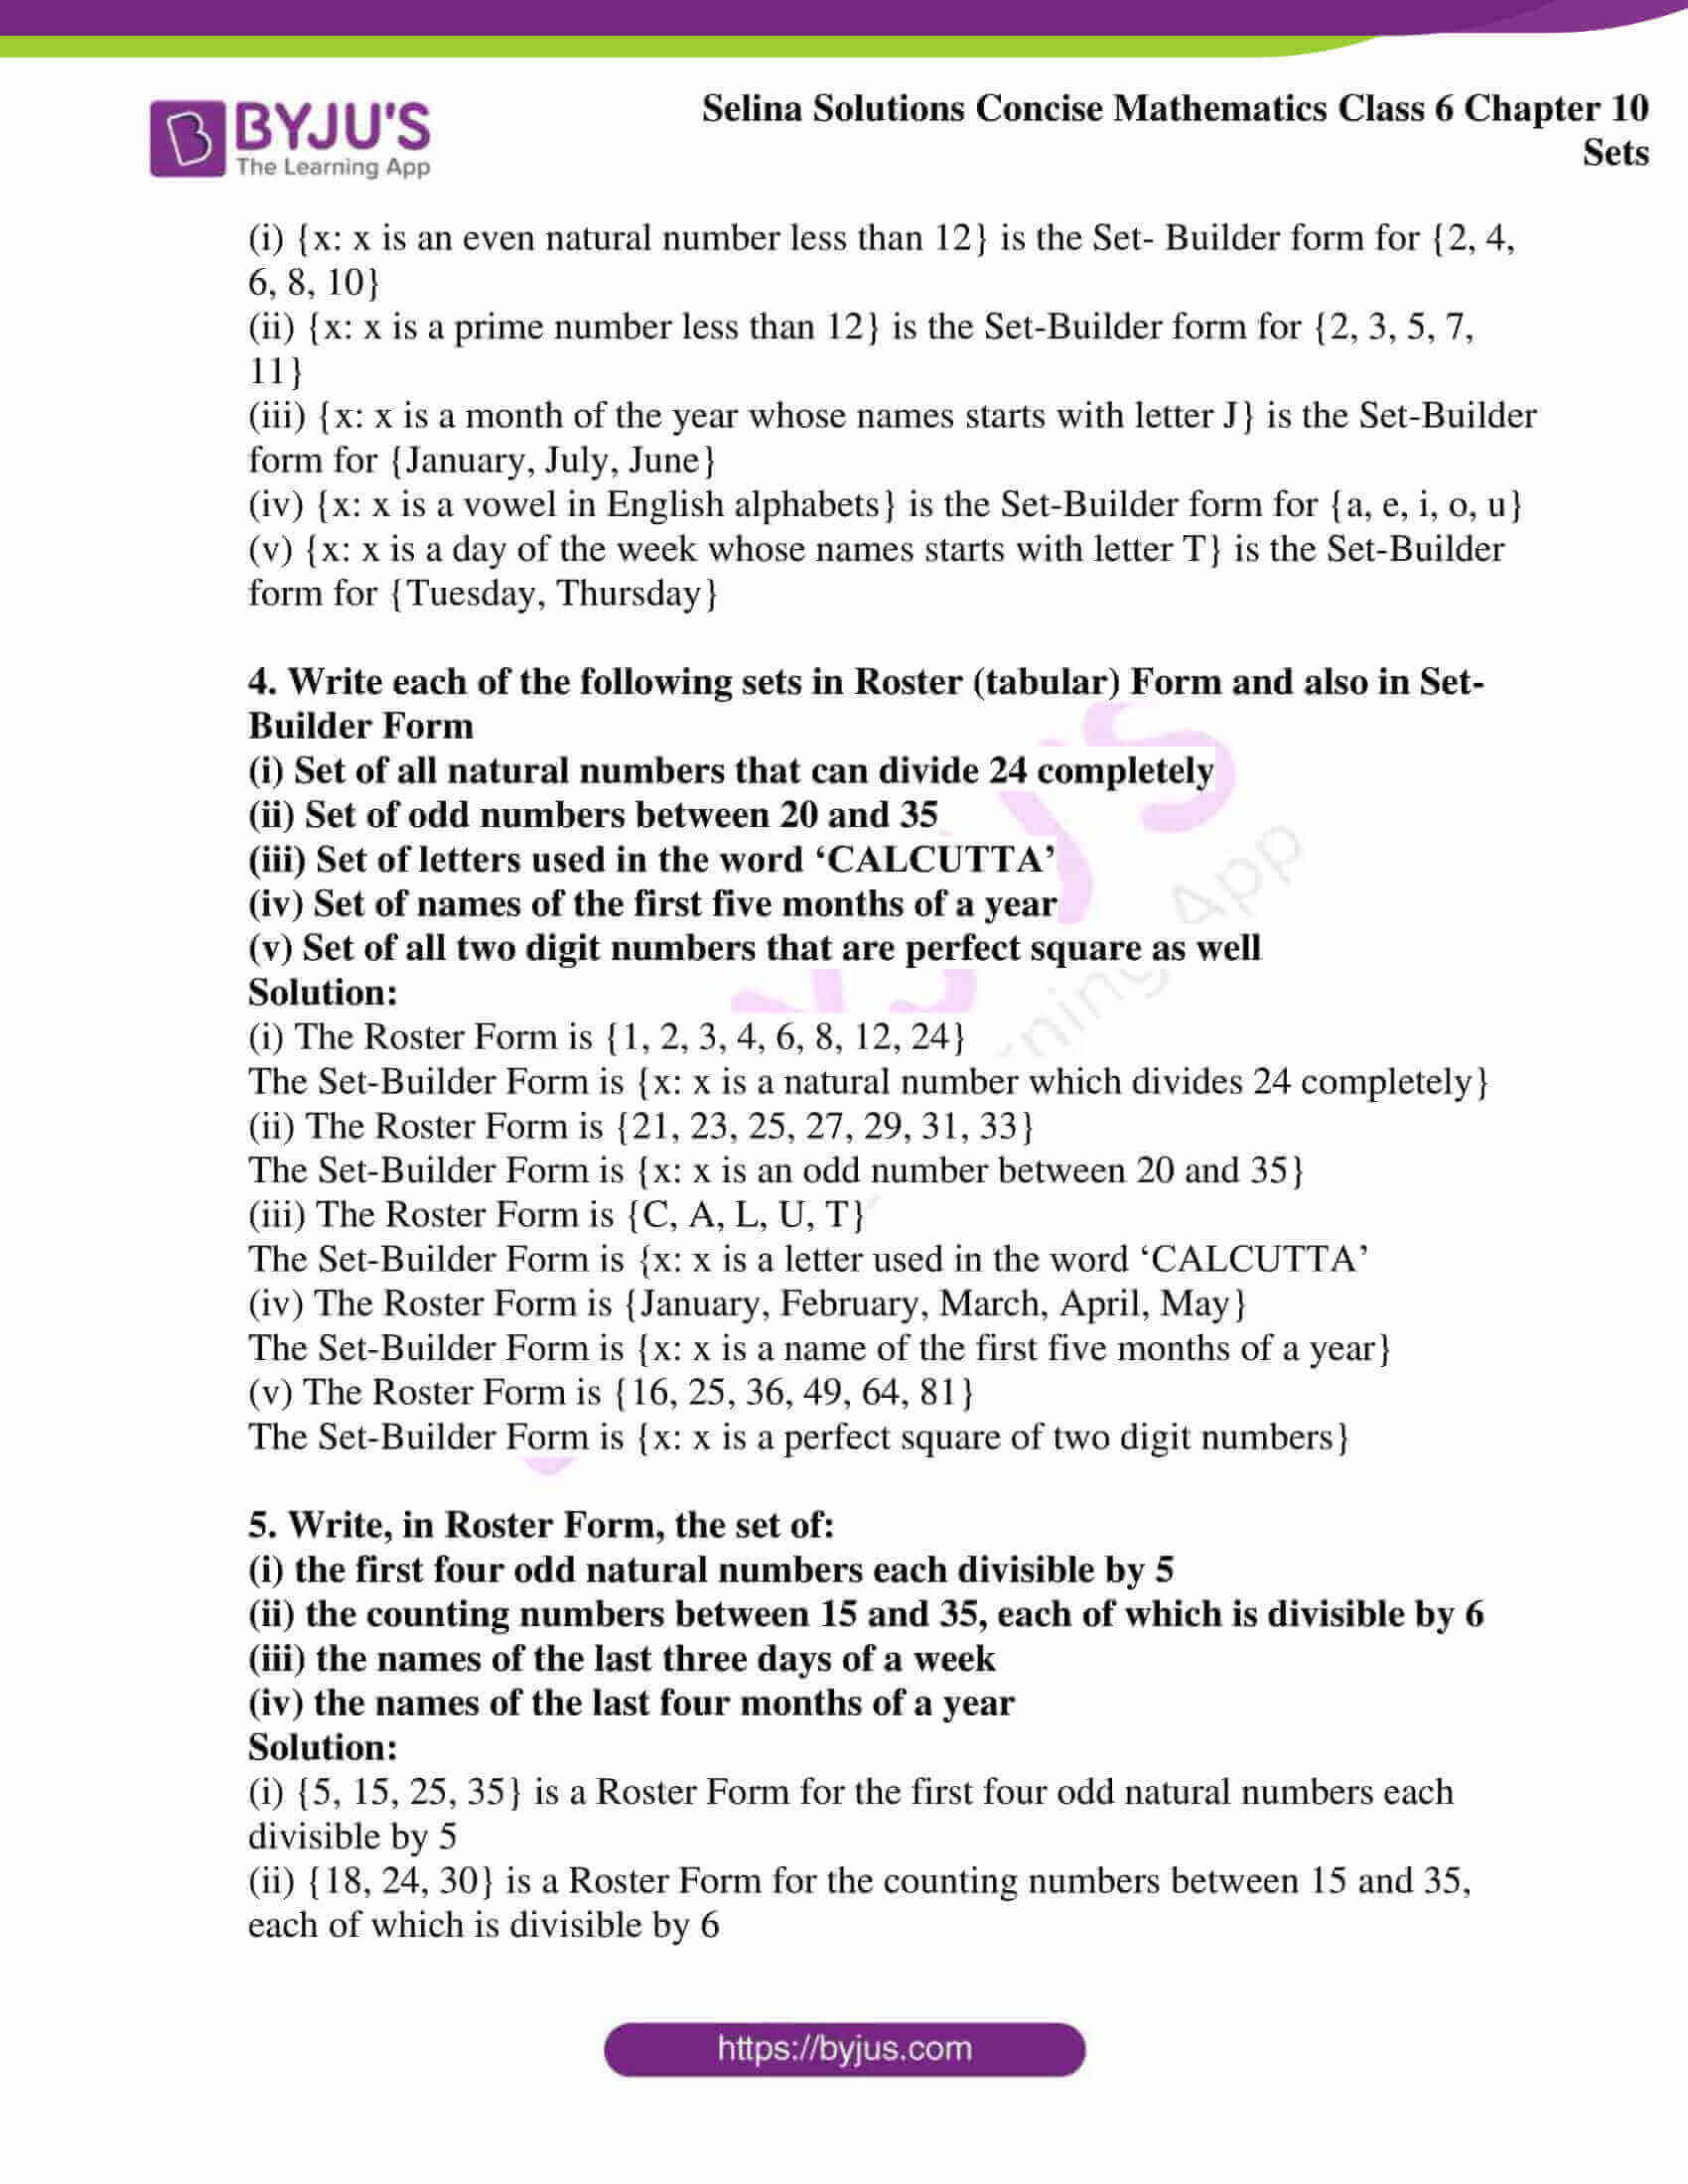 selina solution concise maths class 6 chapter 10 ex c 2